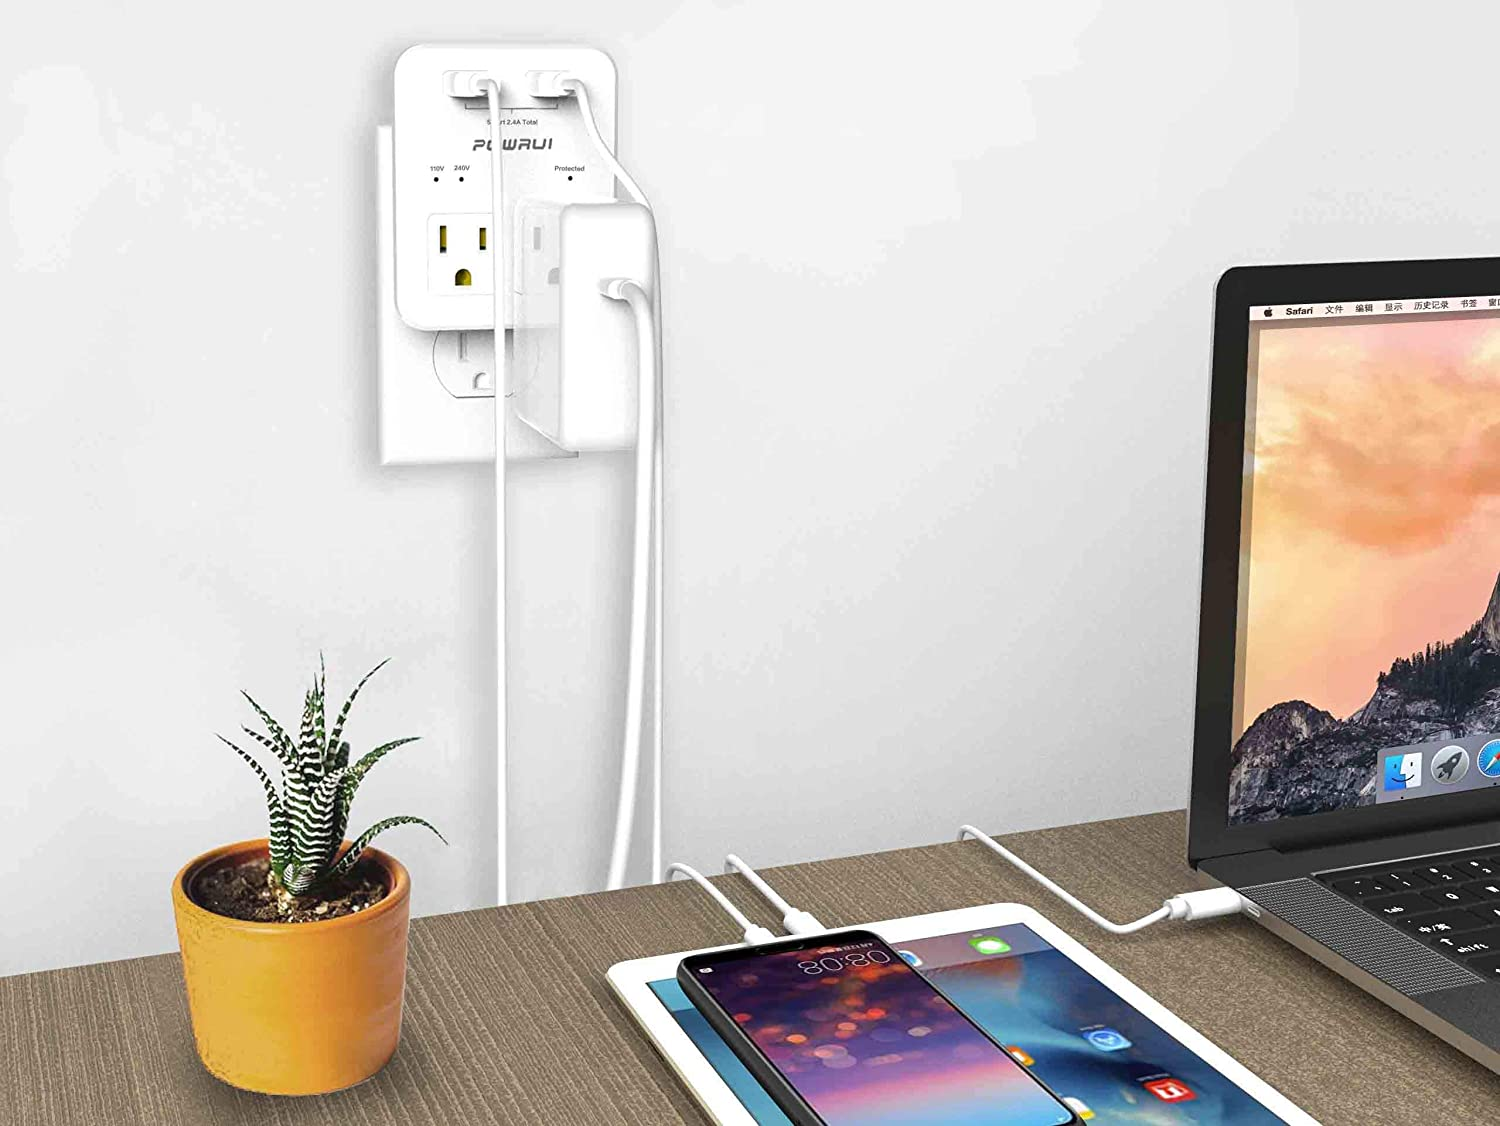 International Power Adapter, POWRUI Surge Protector Travel Adapter with 2 USB Ports & 2 US Outlets, Plug for Europe, UK, China, Australia, Japan, Fit for Laptop, Cell Phones (Not Voltage Converter) - -